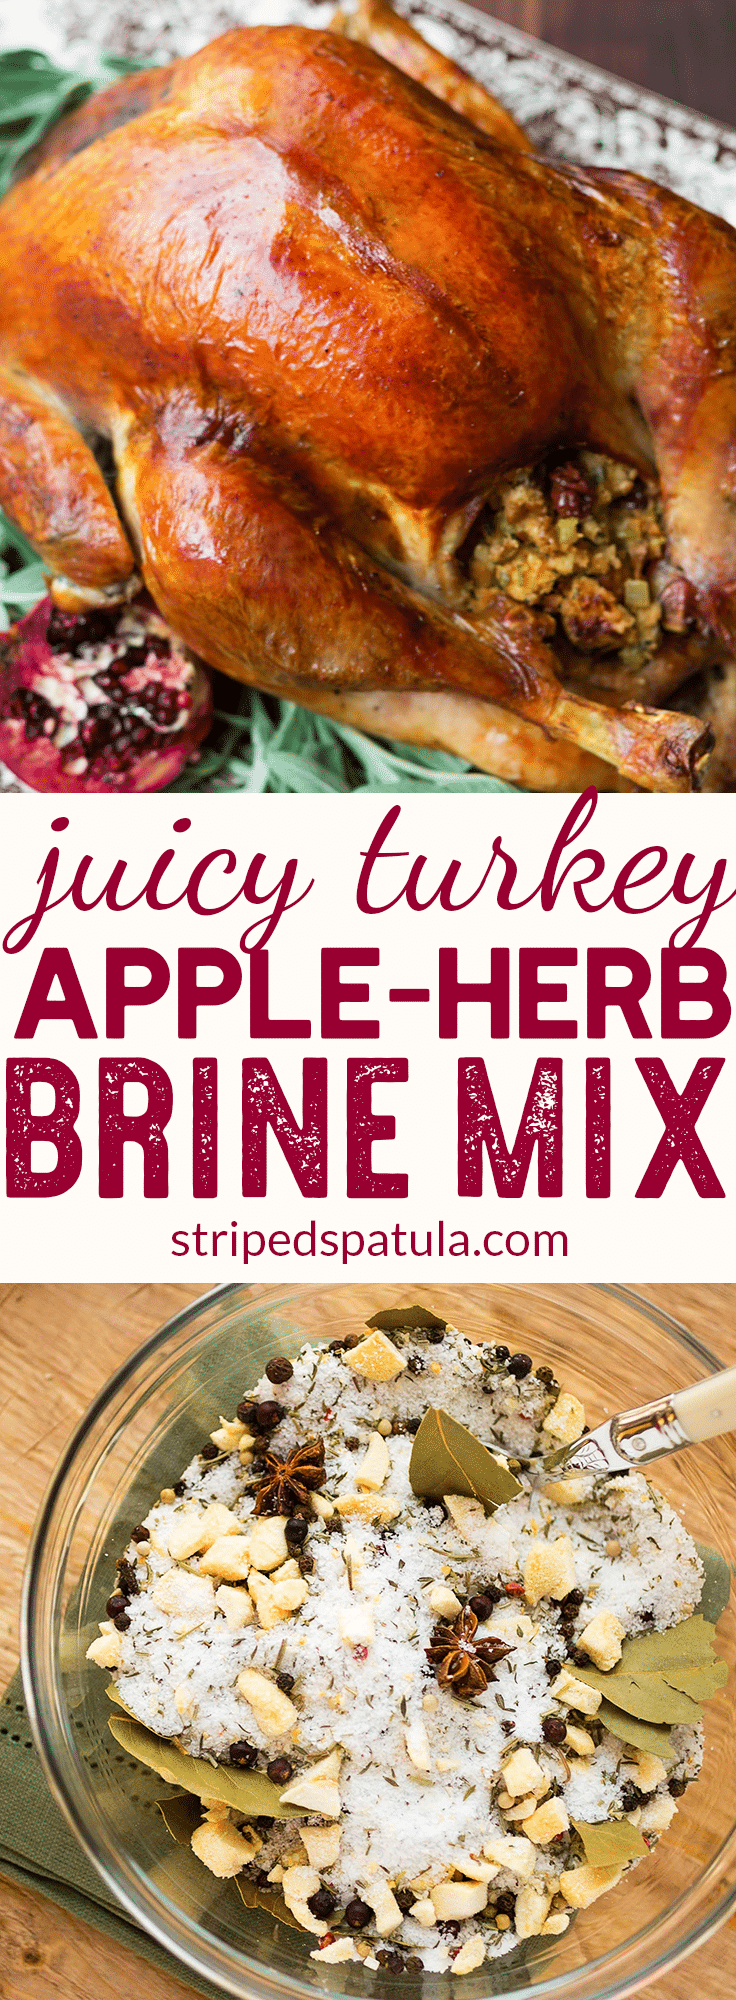 Apple Herb Turkey Brine | Thanksgiving Recipes |  Turkey Recipes |  Juicy Turkey Thanksgiving | #thanksgiving #thanksgivingrecipes #turkeyrecipe #thanksgivingideas